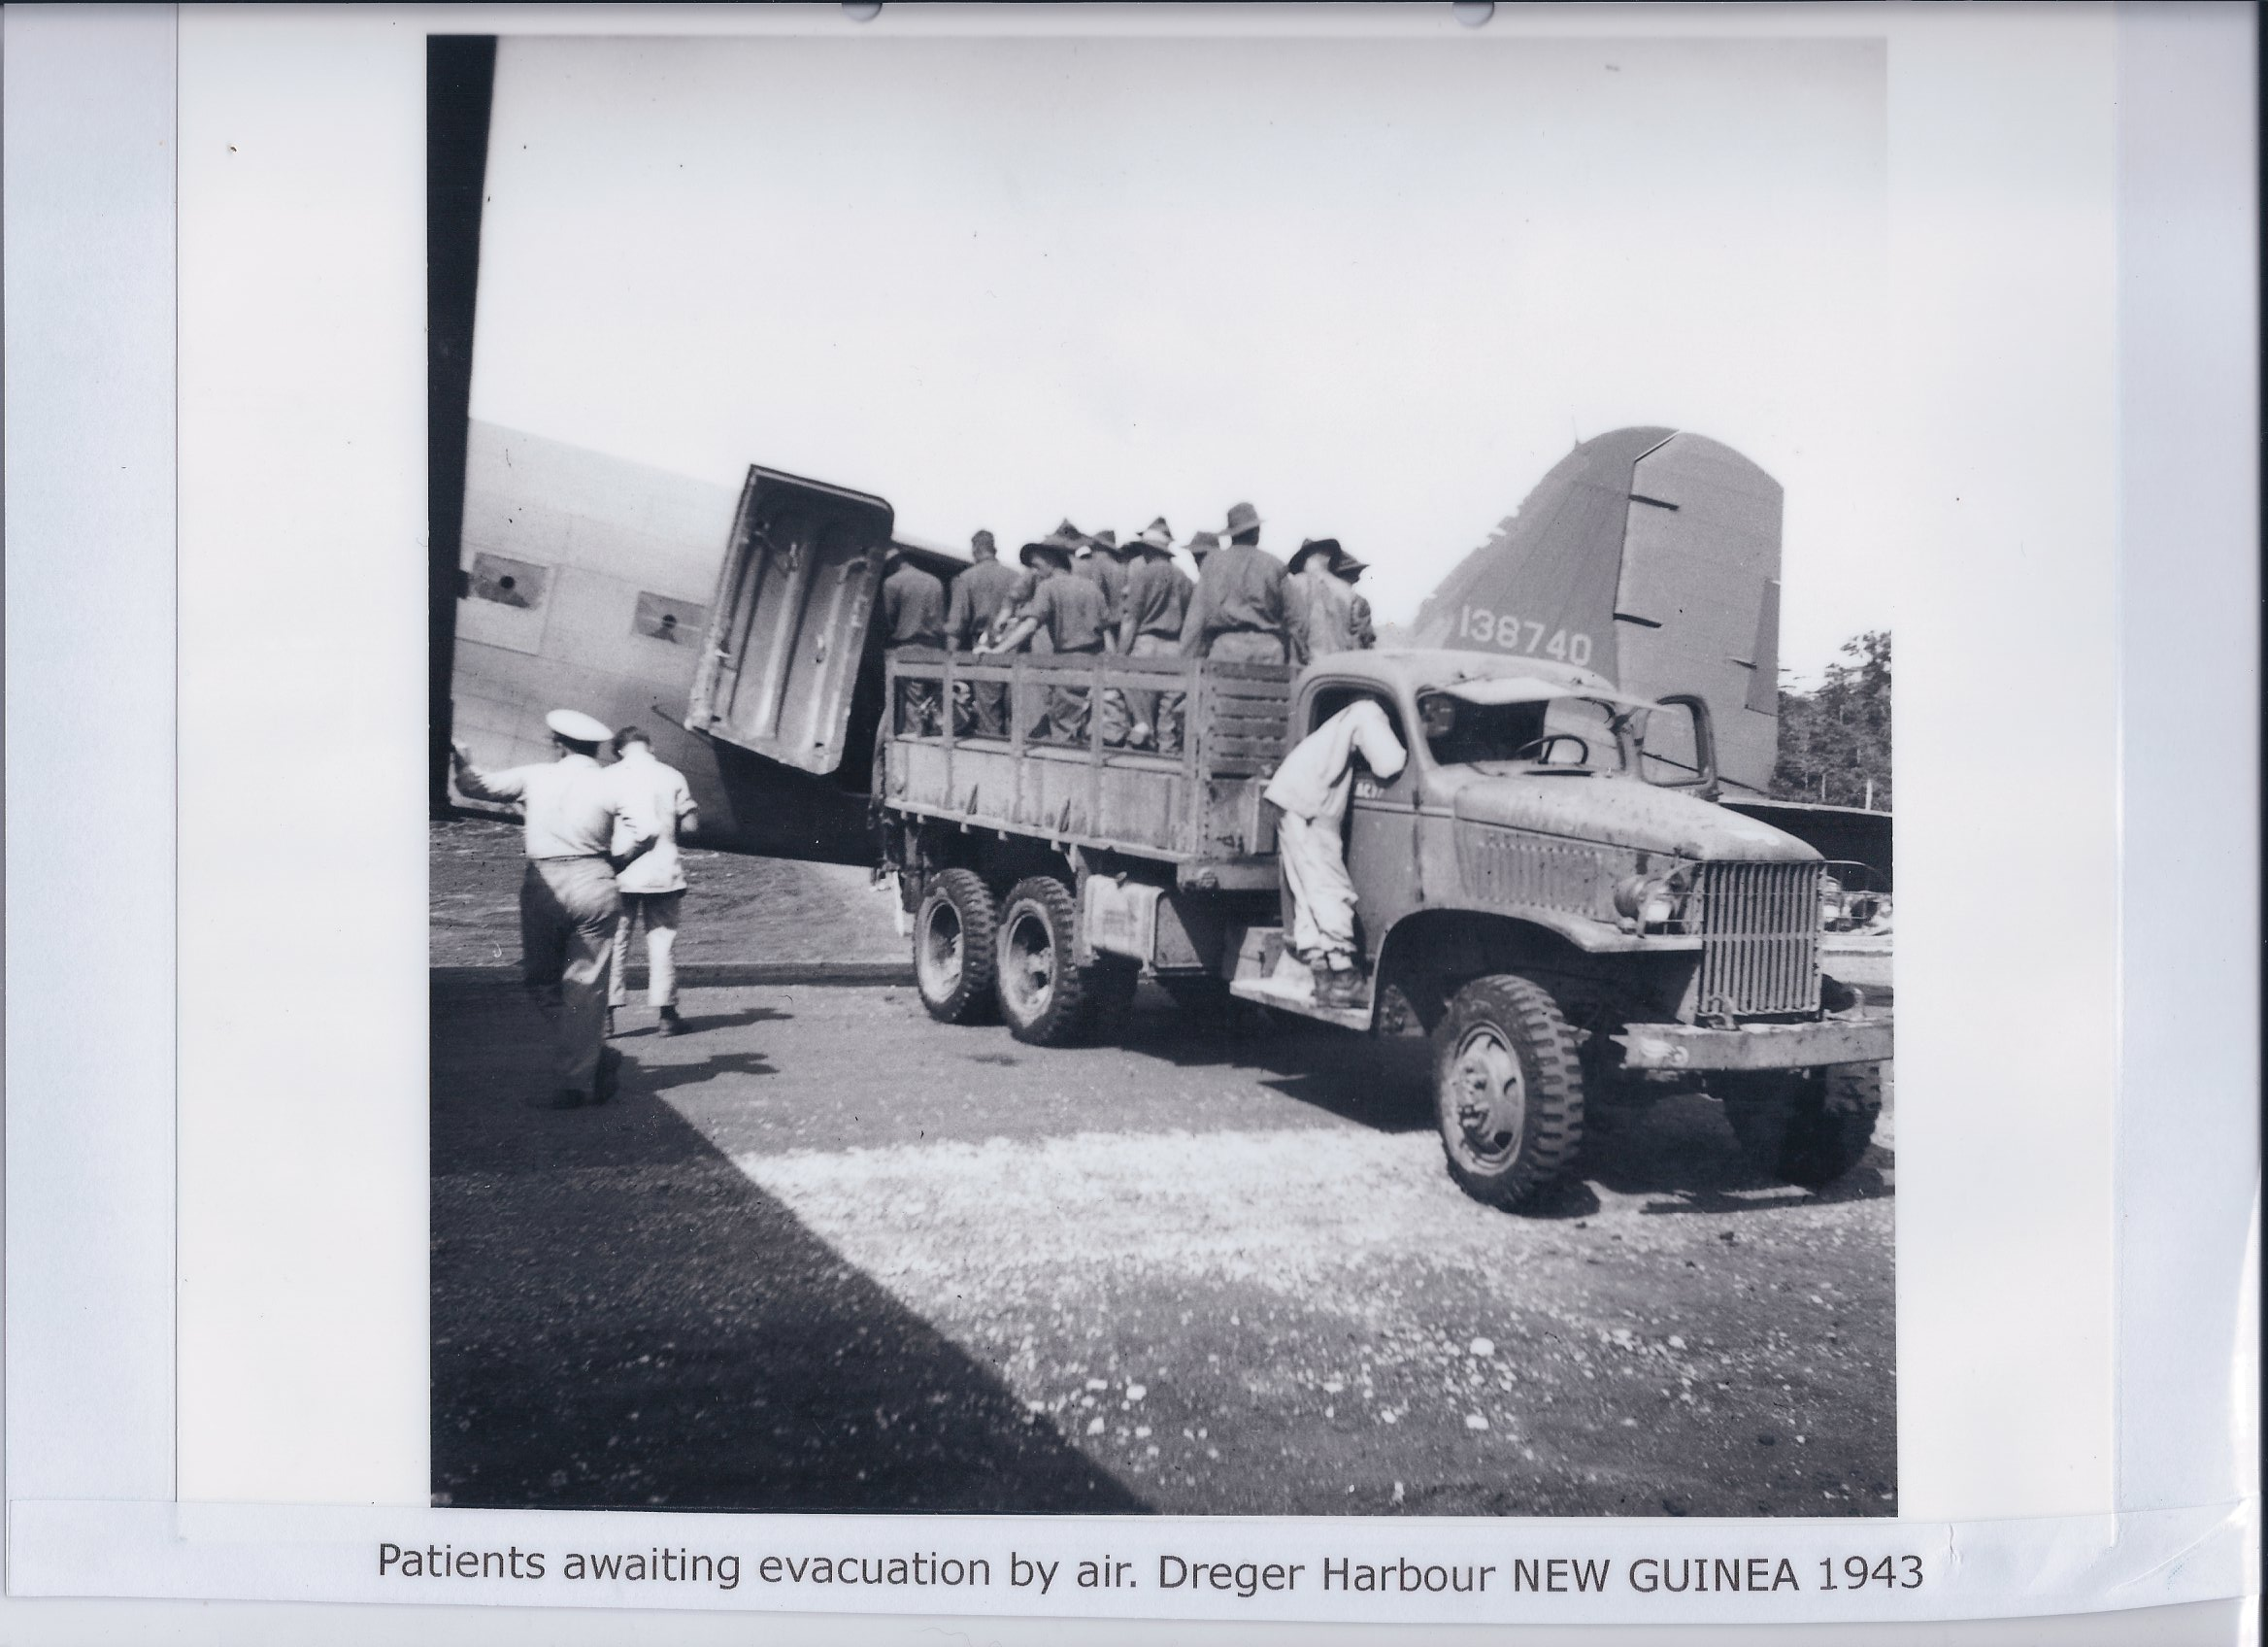 Patients awaiting evacuation by air. Dreger Harbour NEW GUINEA 1943